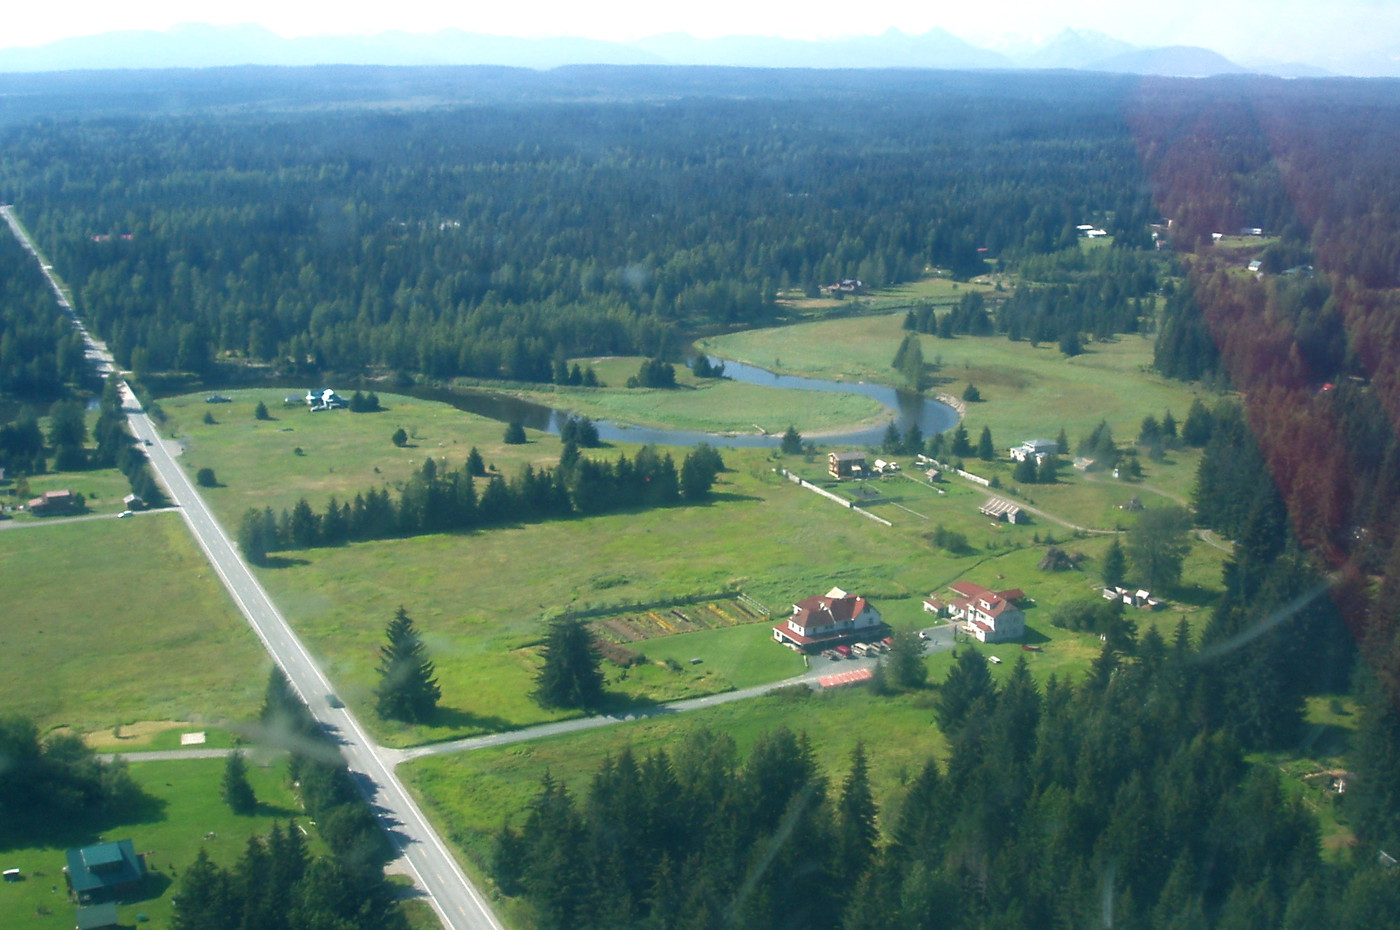 Gustavus Inn sits in the Salmon River meadow